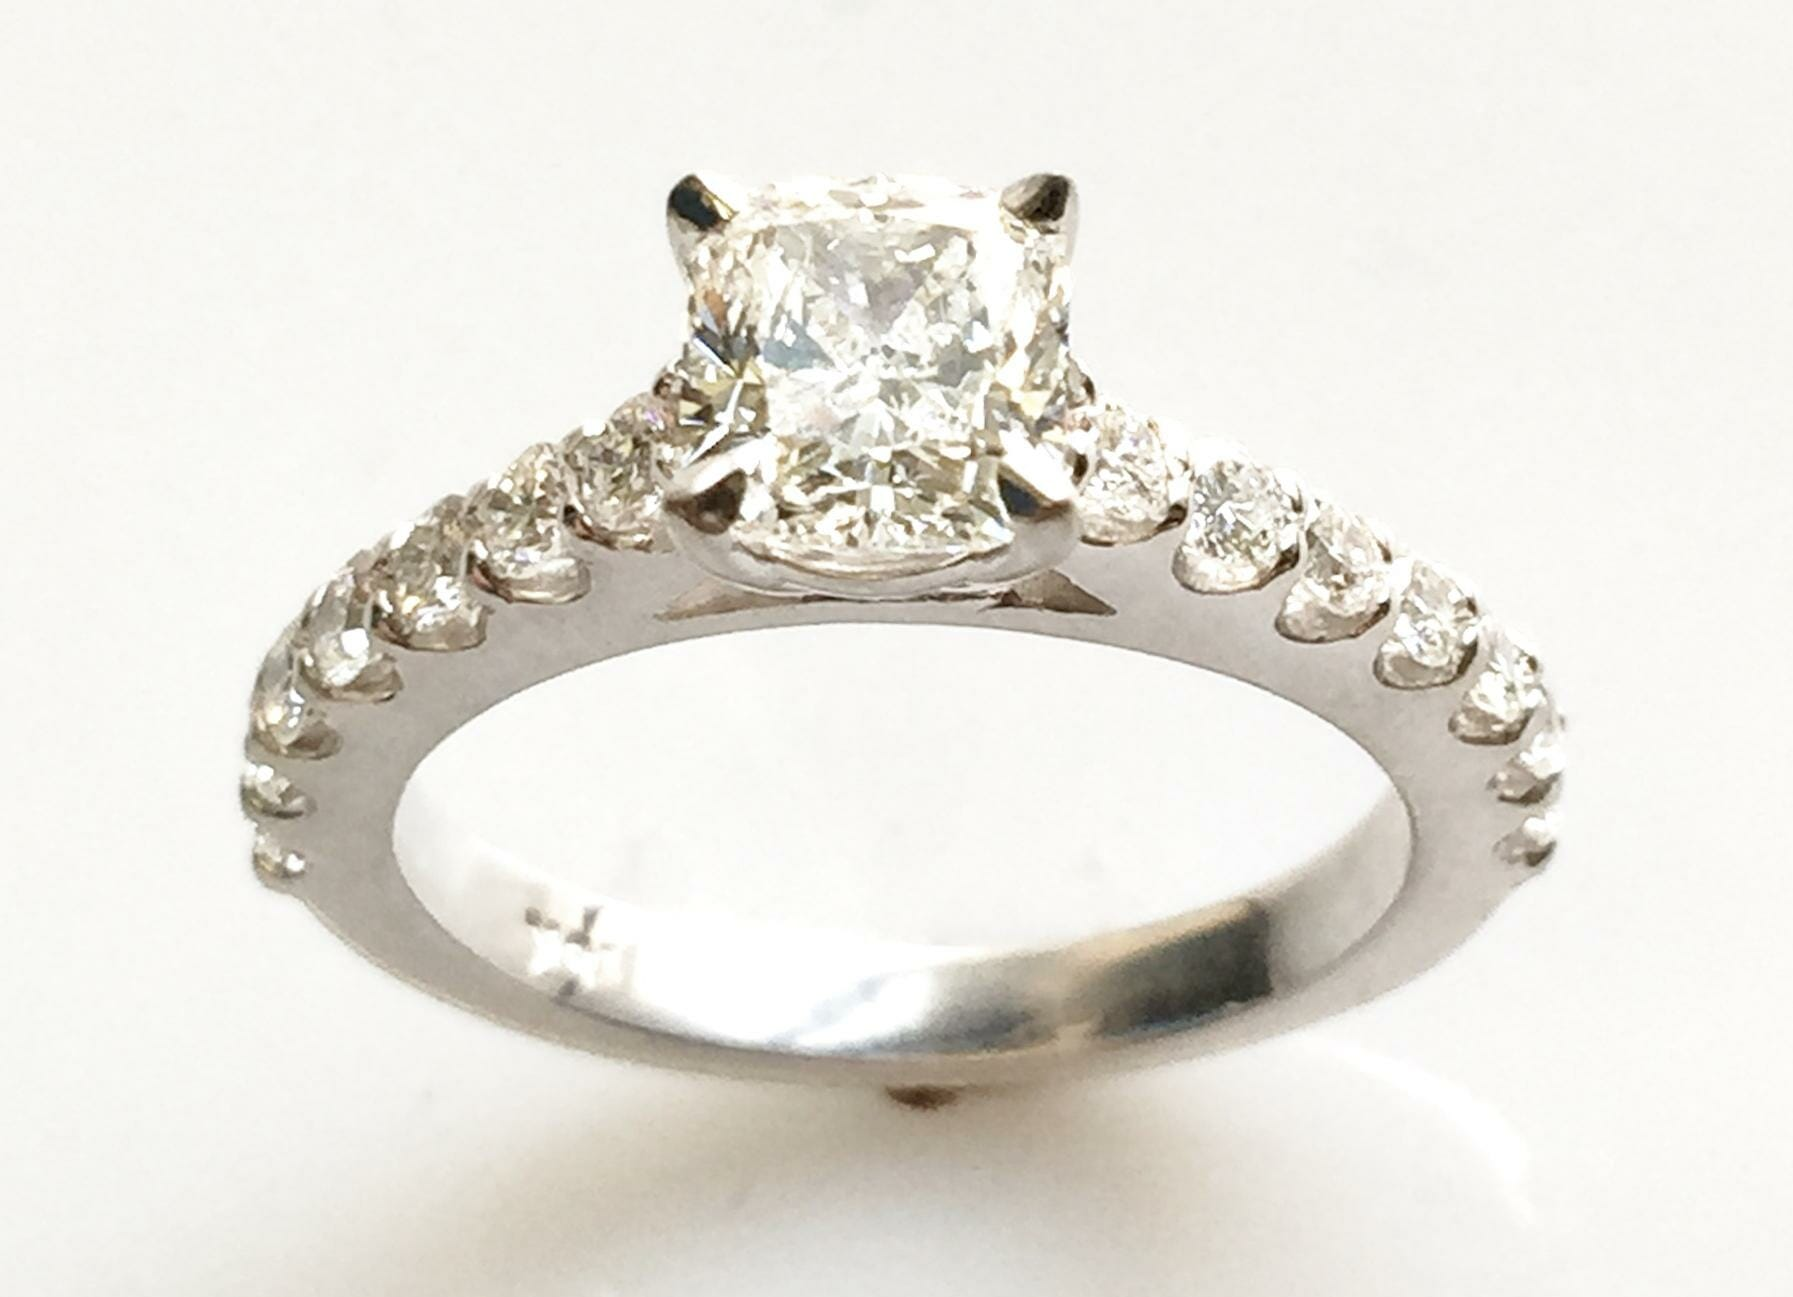 Cushion Cut Diamond Engagement Ring with Scalloped Sides